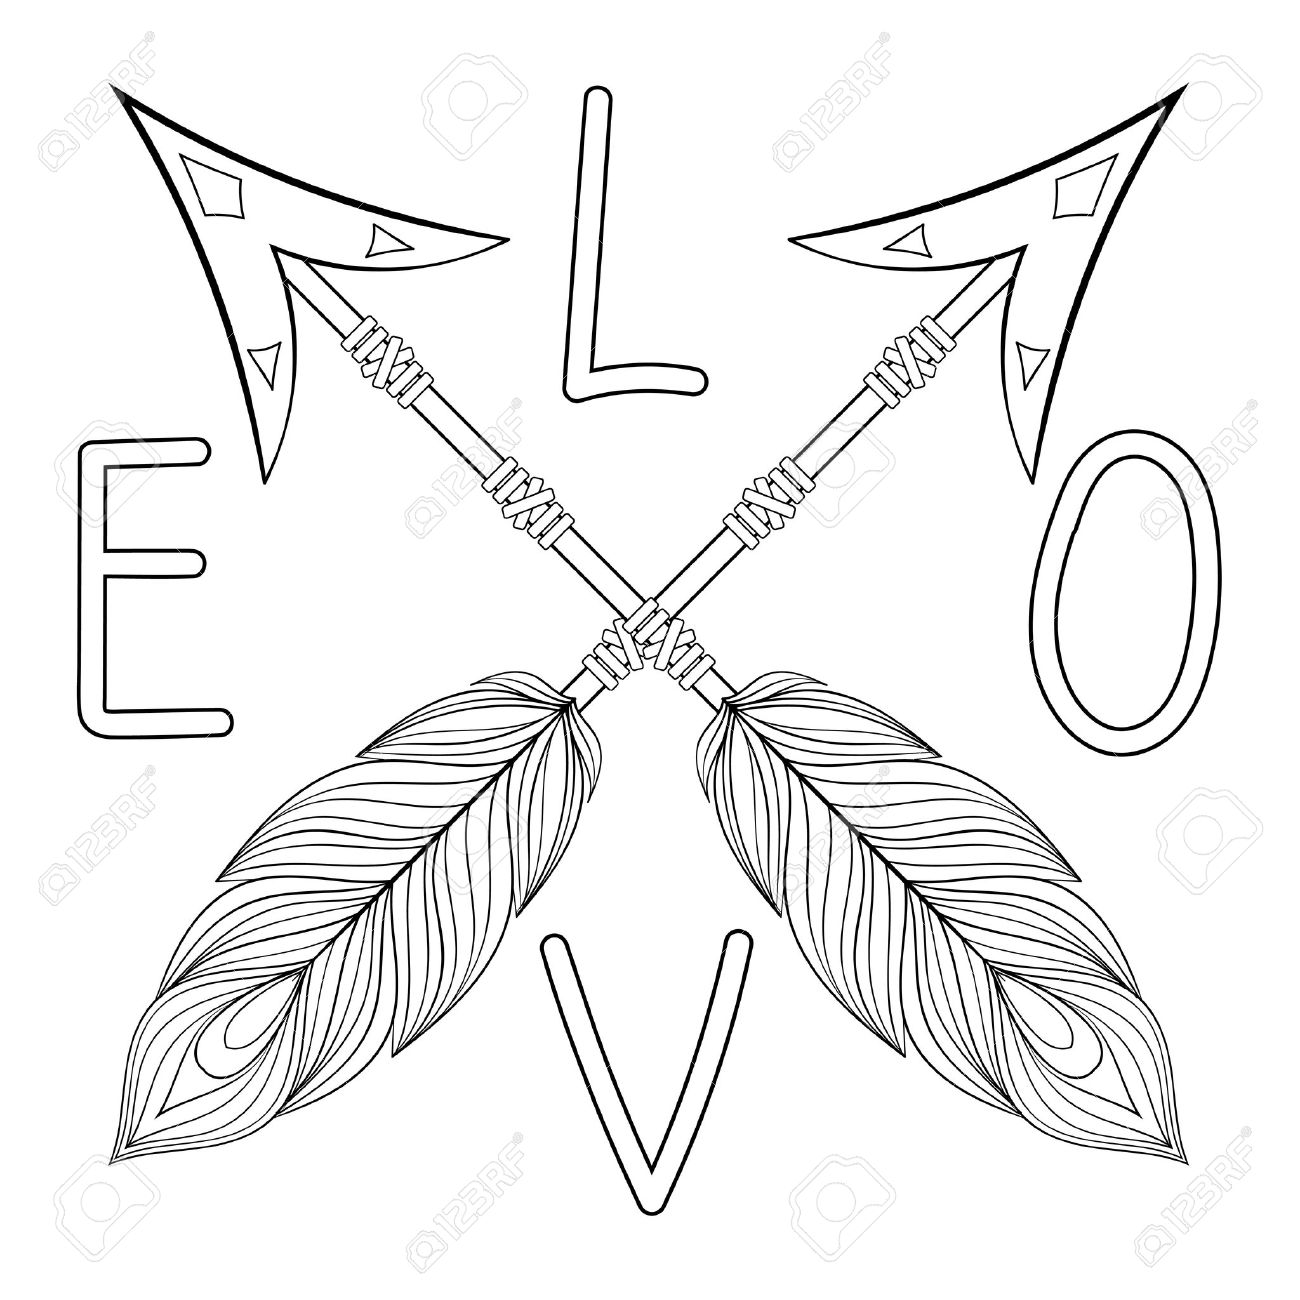 arrow coloring pages Bohemian Love Arrow Handpainted Sign With Feathers. Hand Drawn  arrow coloring pages